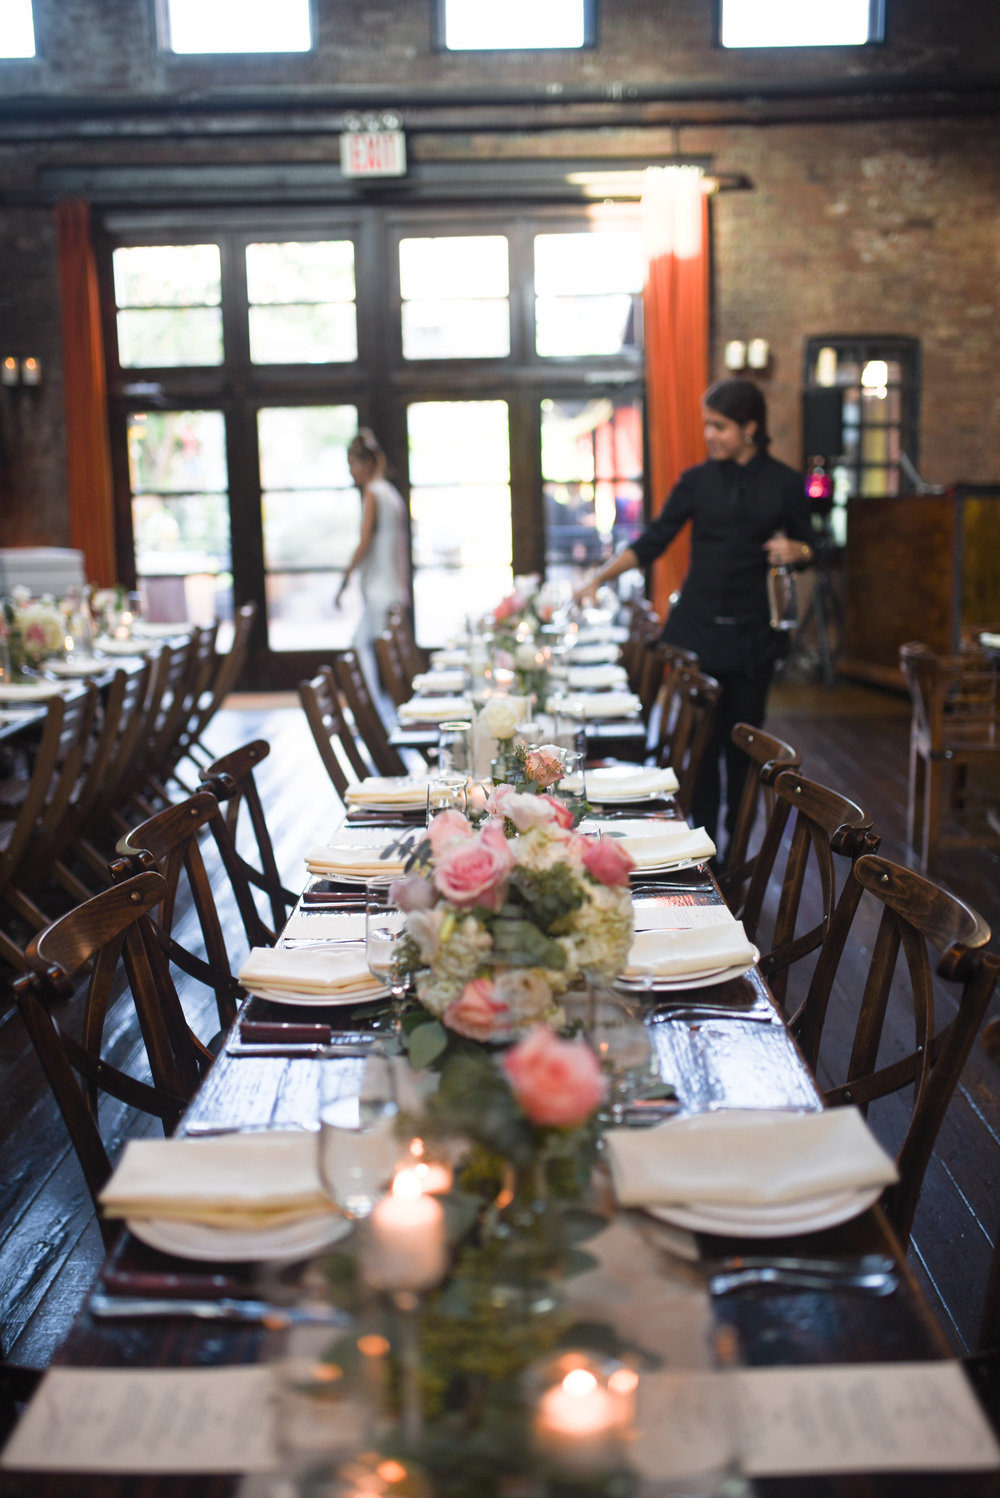 Pink and white flowers adorn the table for this wedding in Brooklyn, New York